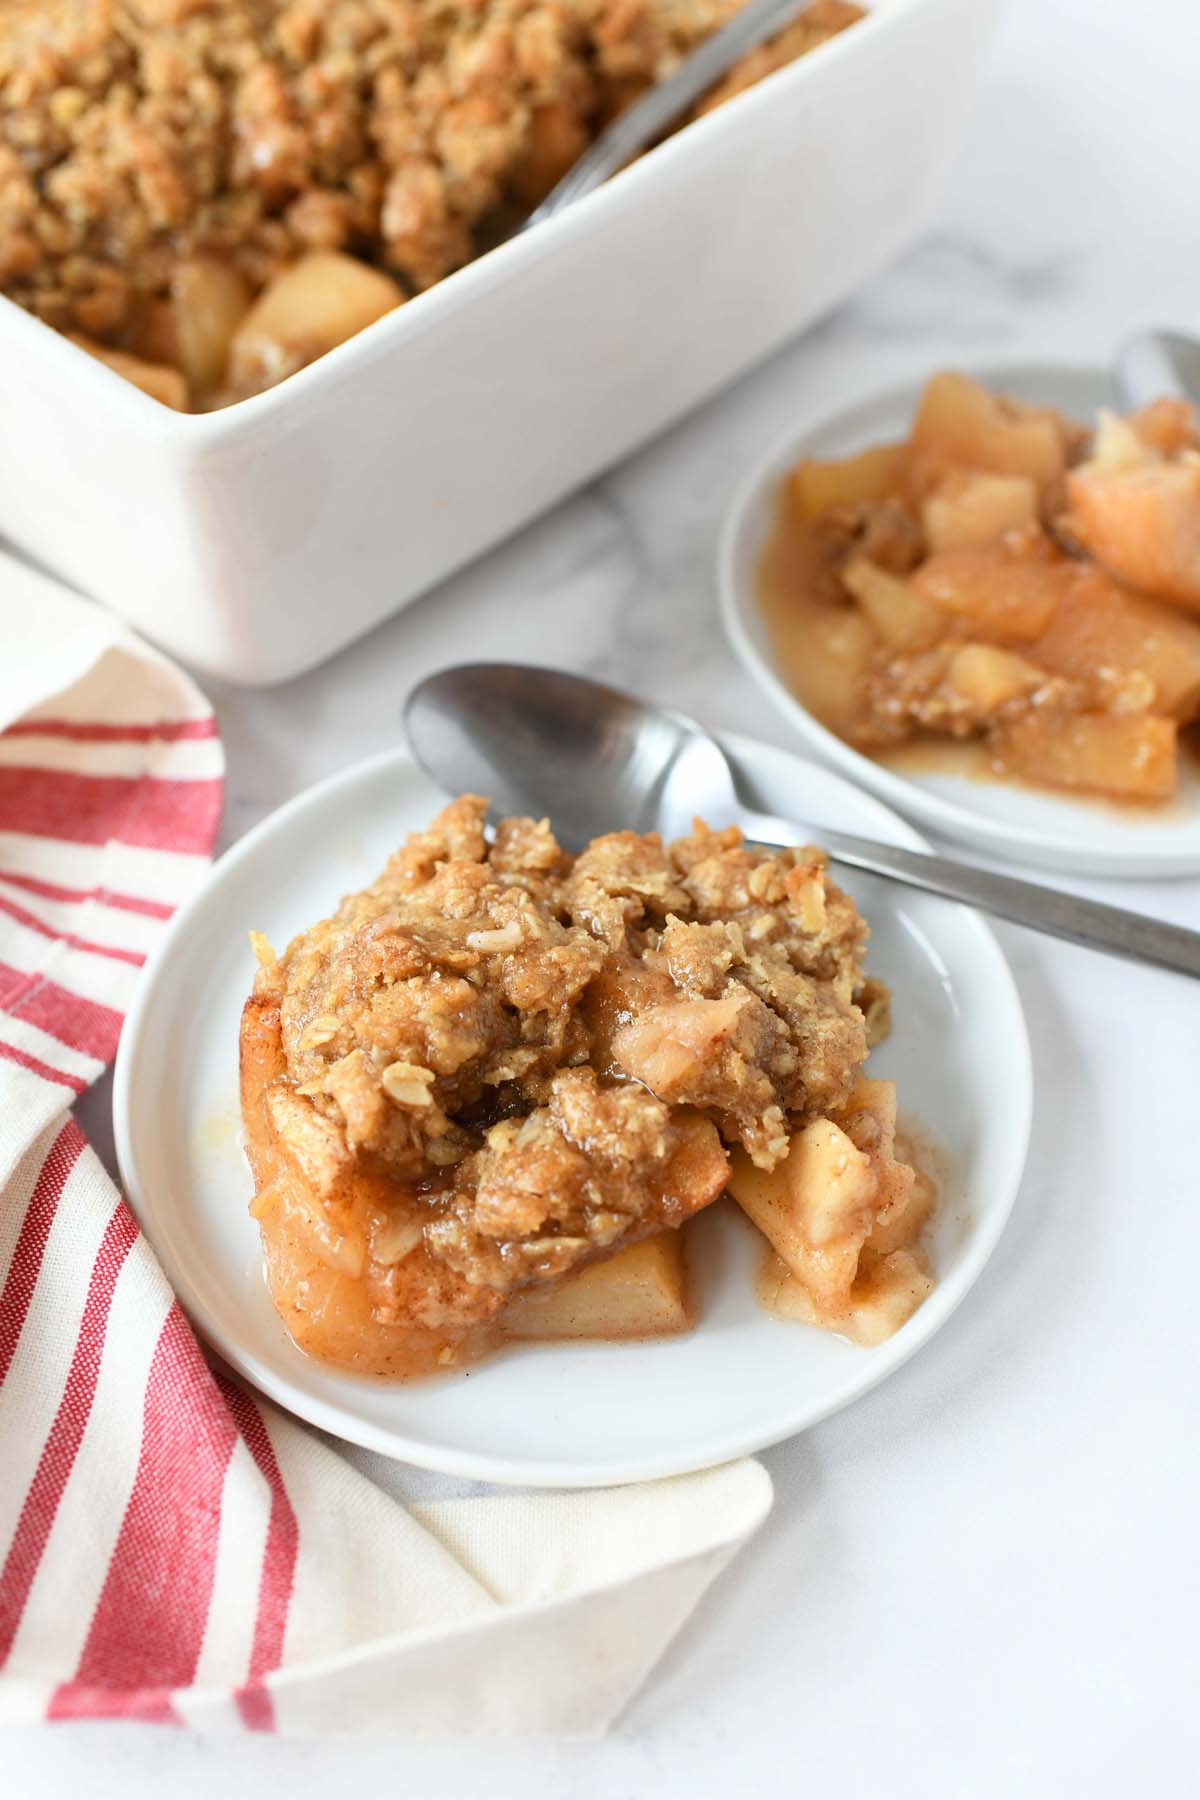 Easy Apple Crisp on a small white plate with a spoon.